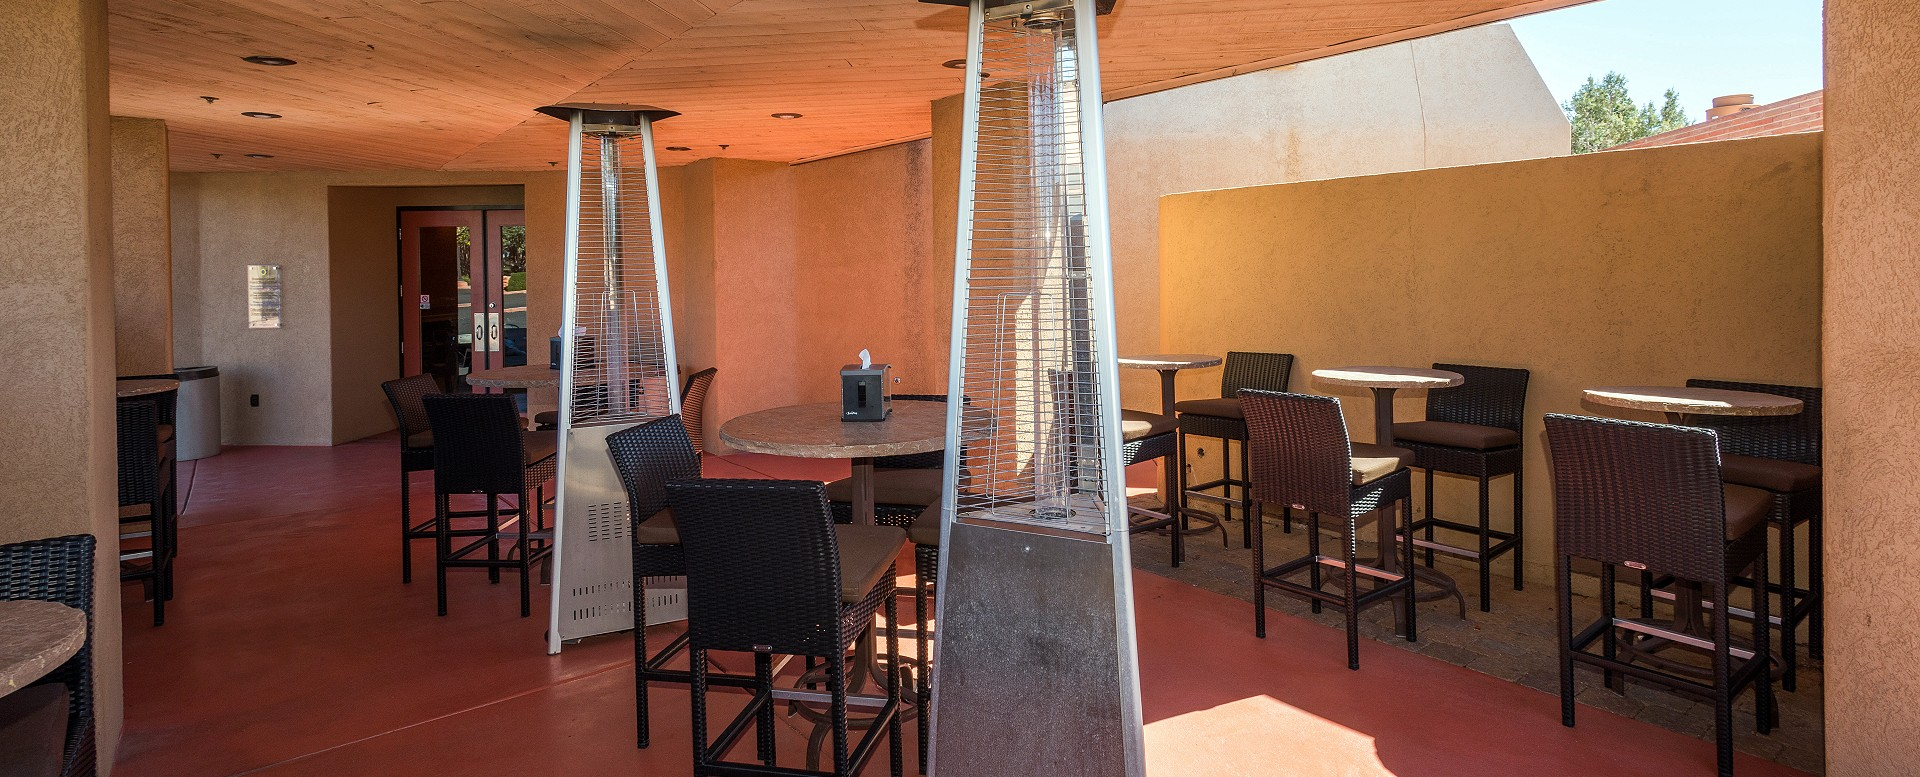 Best Western Plus Inn of Sedona-Outdoor Dining